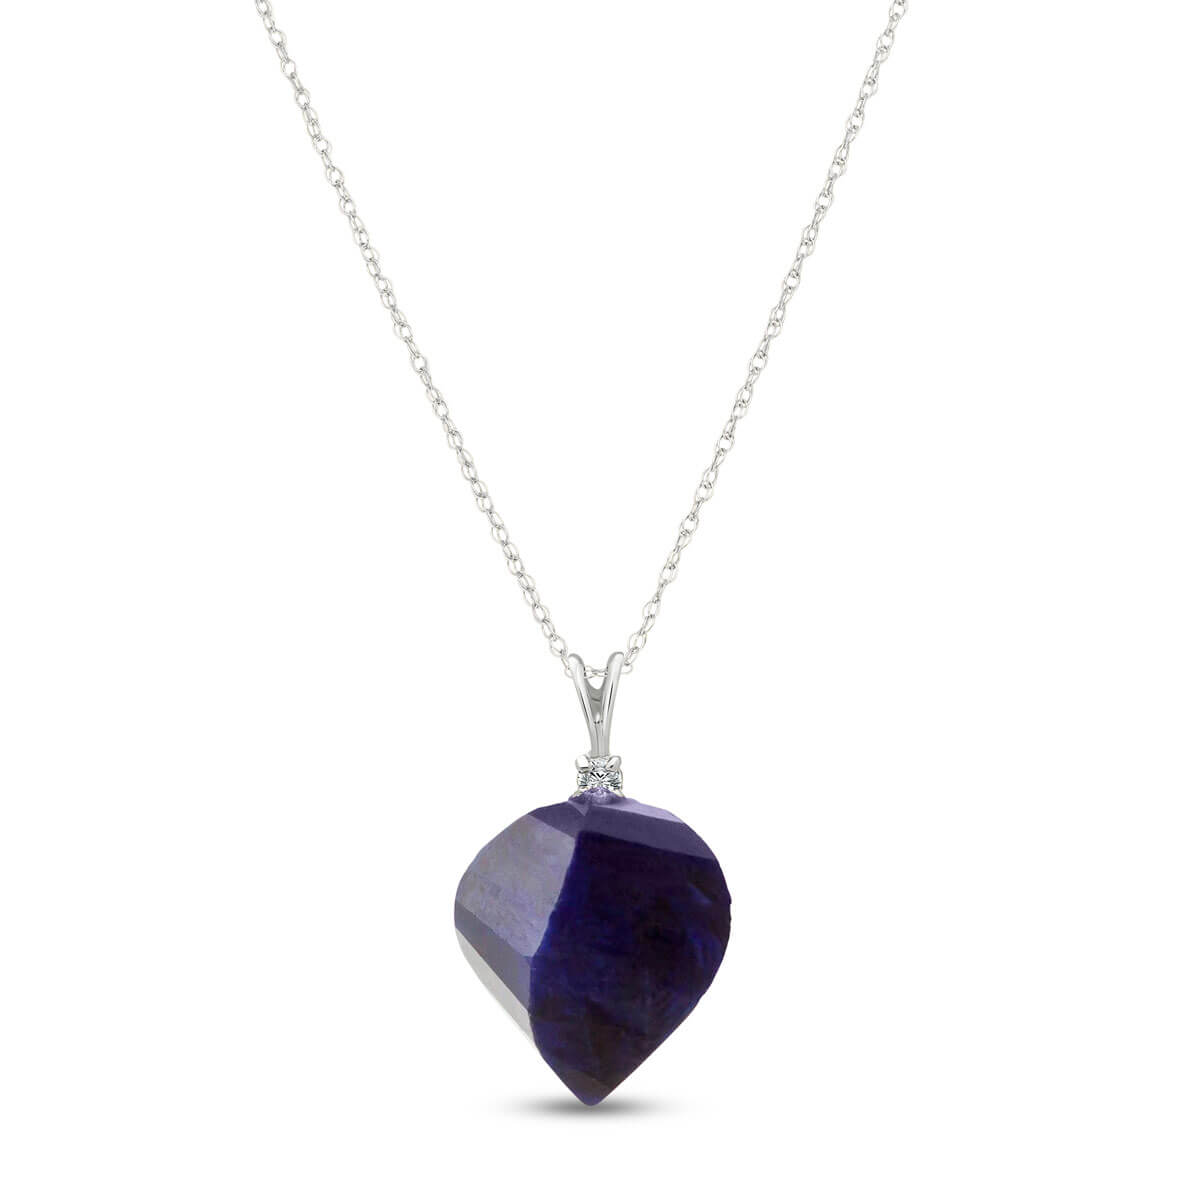 Twisted Briolette Cut Sapphire Pendant Necklace 15.3 ctw in 9ct White Gold